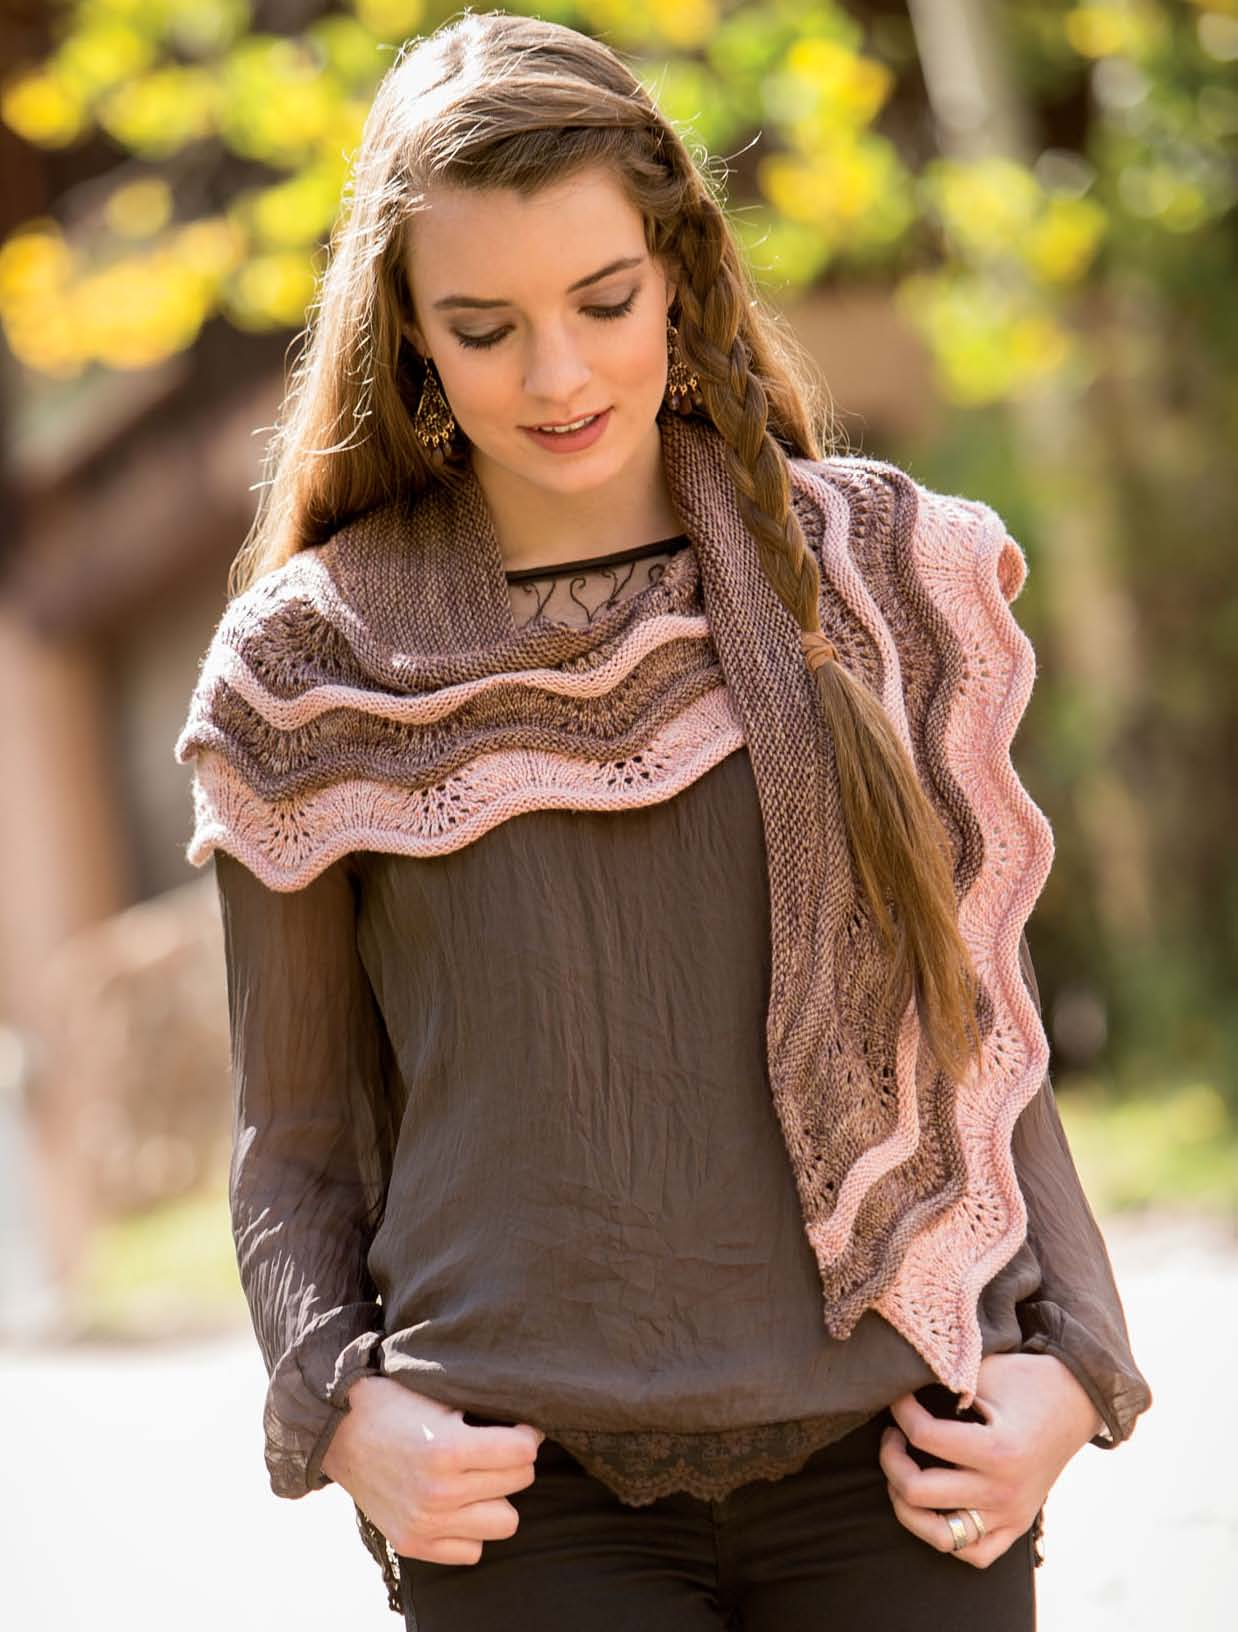 New Lace Knitting - Neoma's Shawl interior beauty image